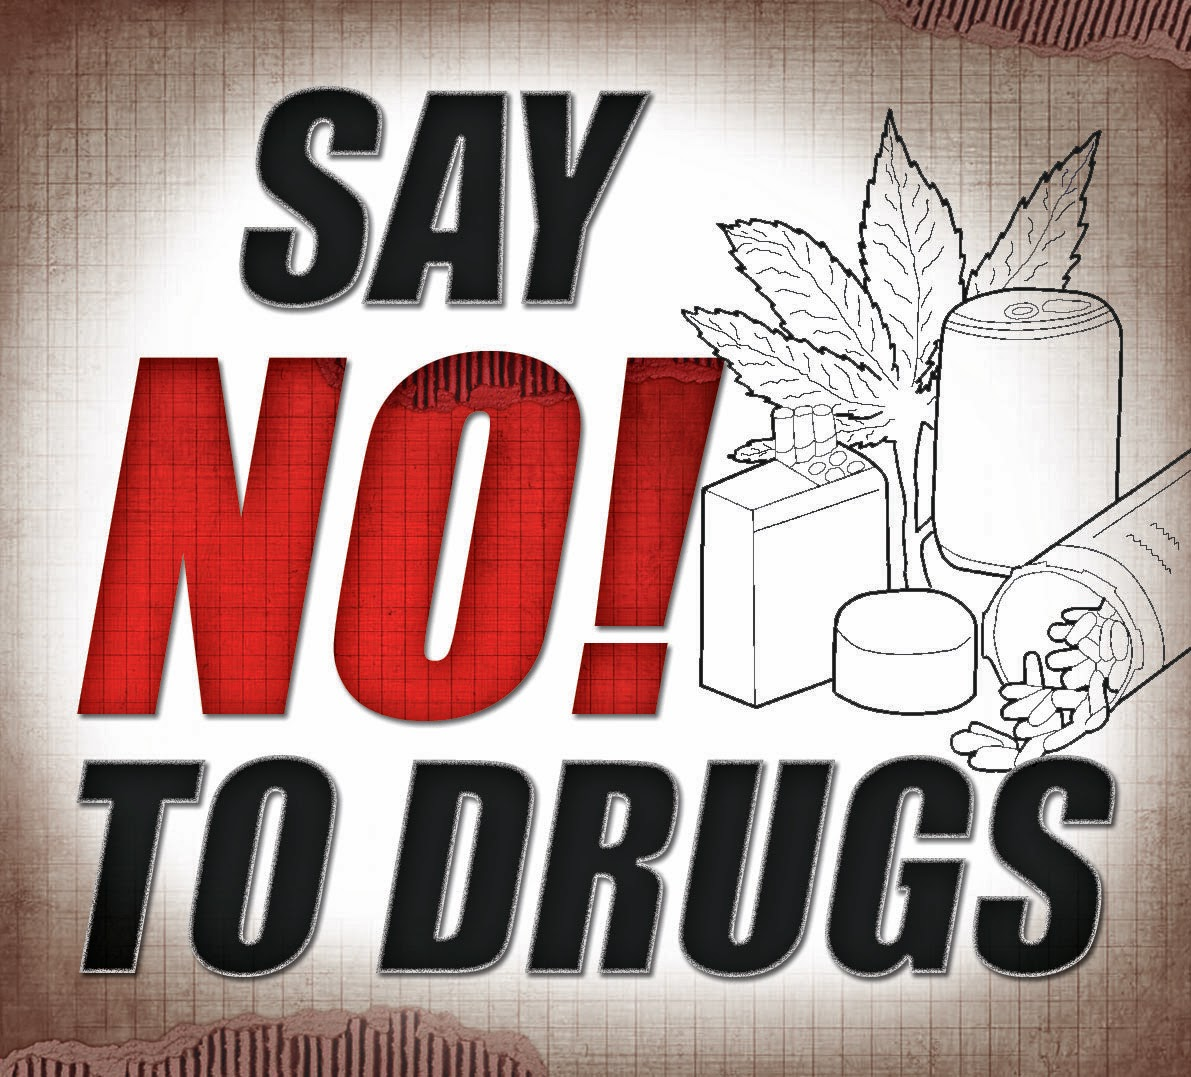 Say no to drugs essay